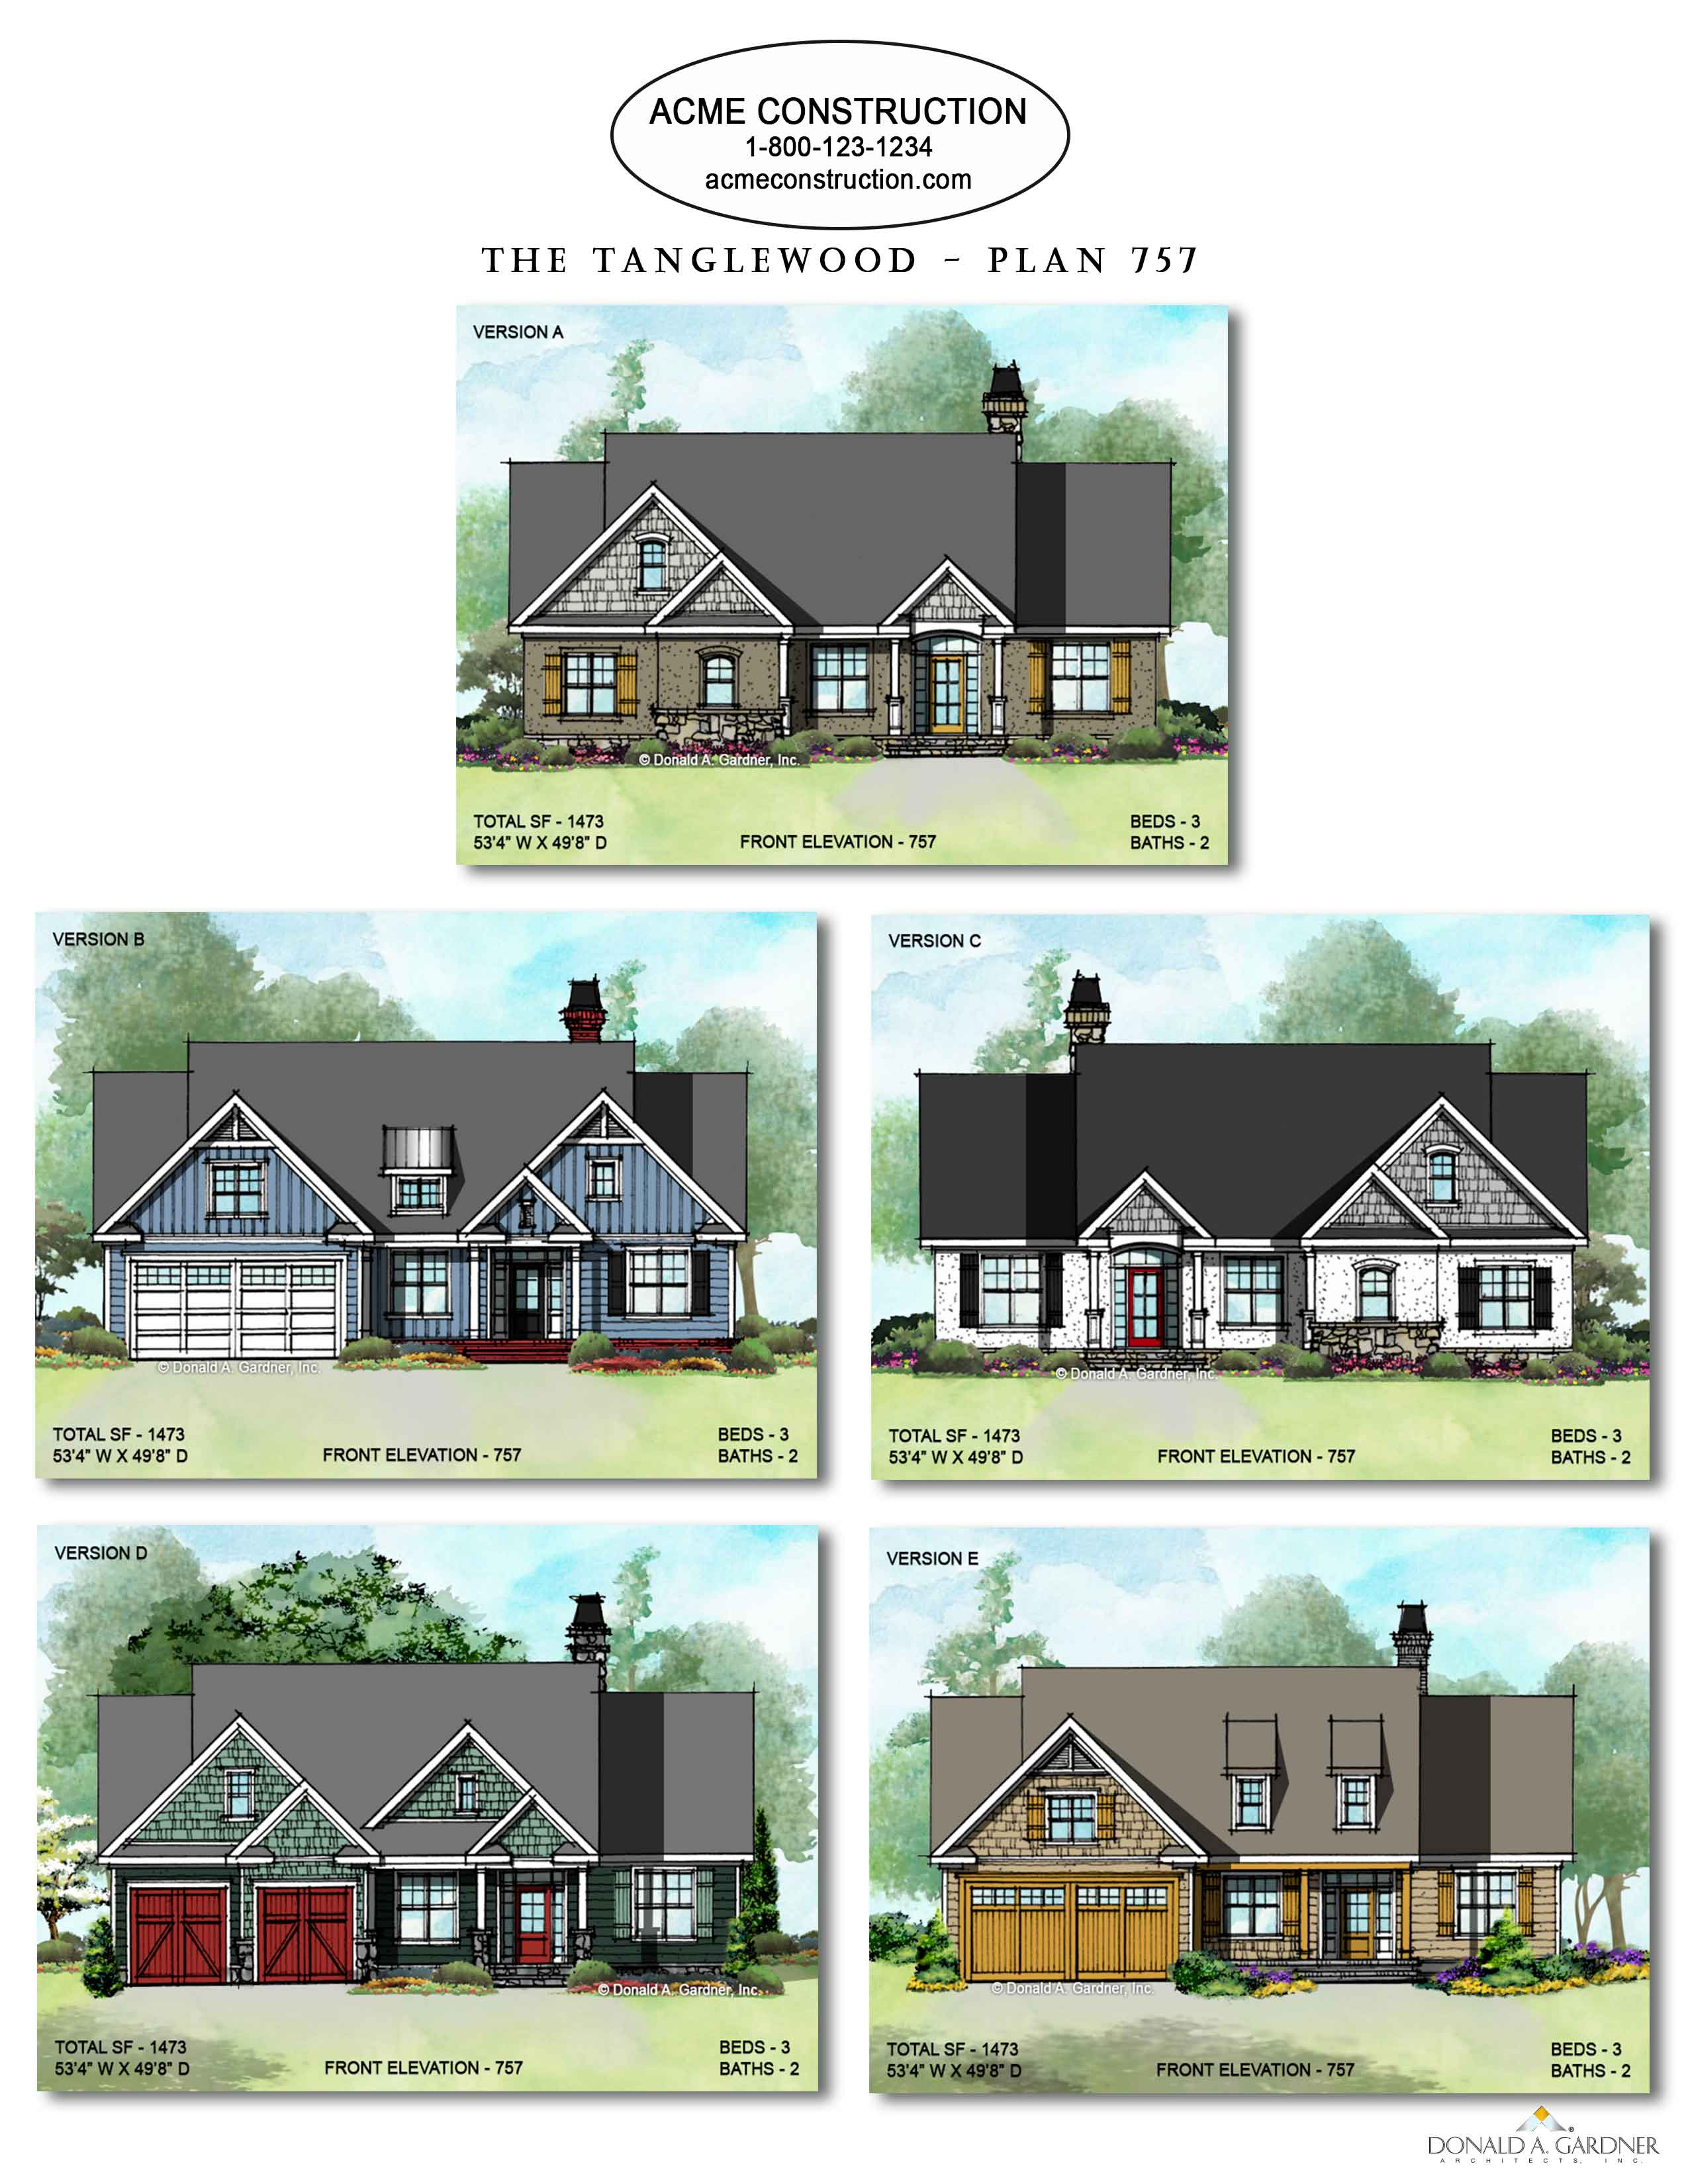 House Plan 757 - The Tanglewood